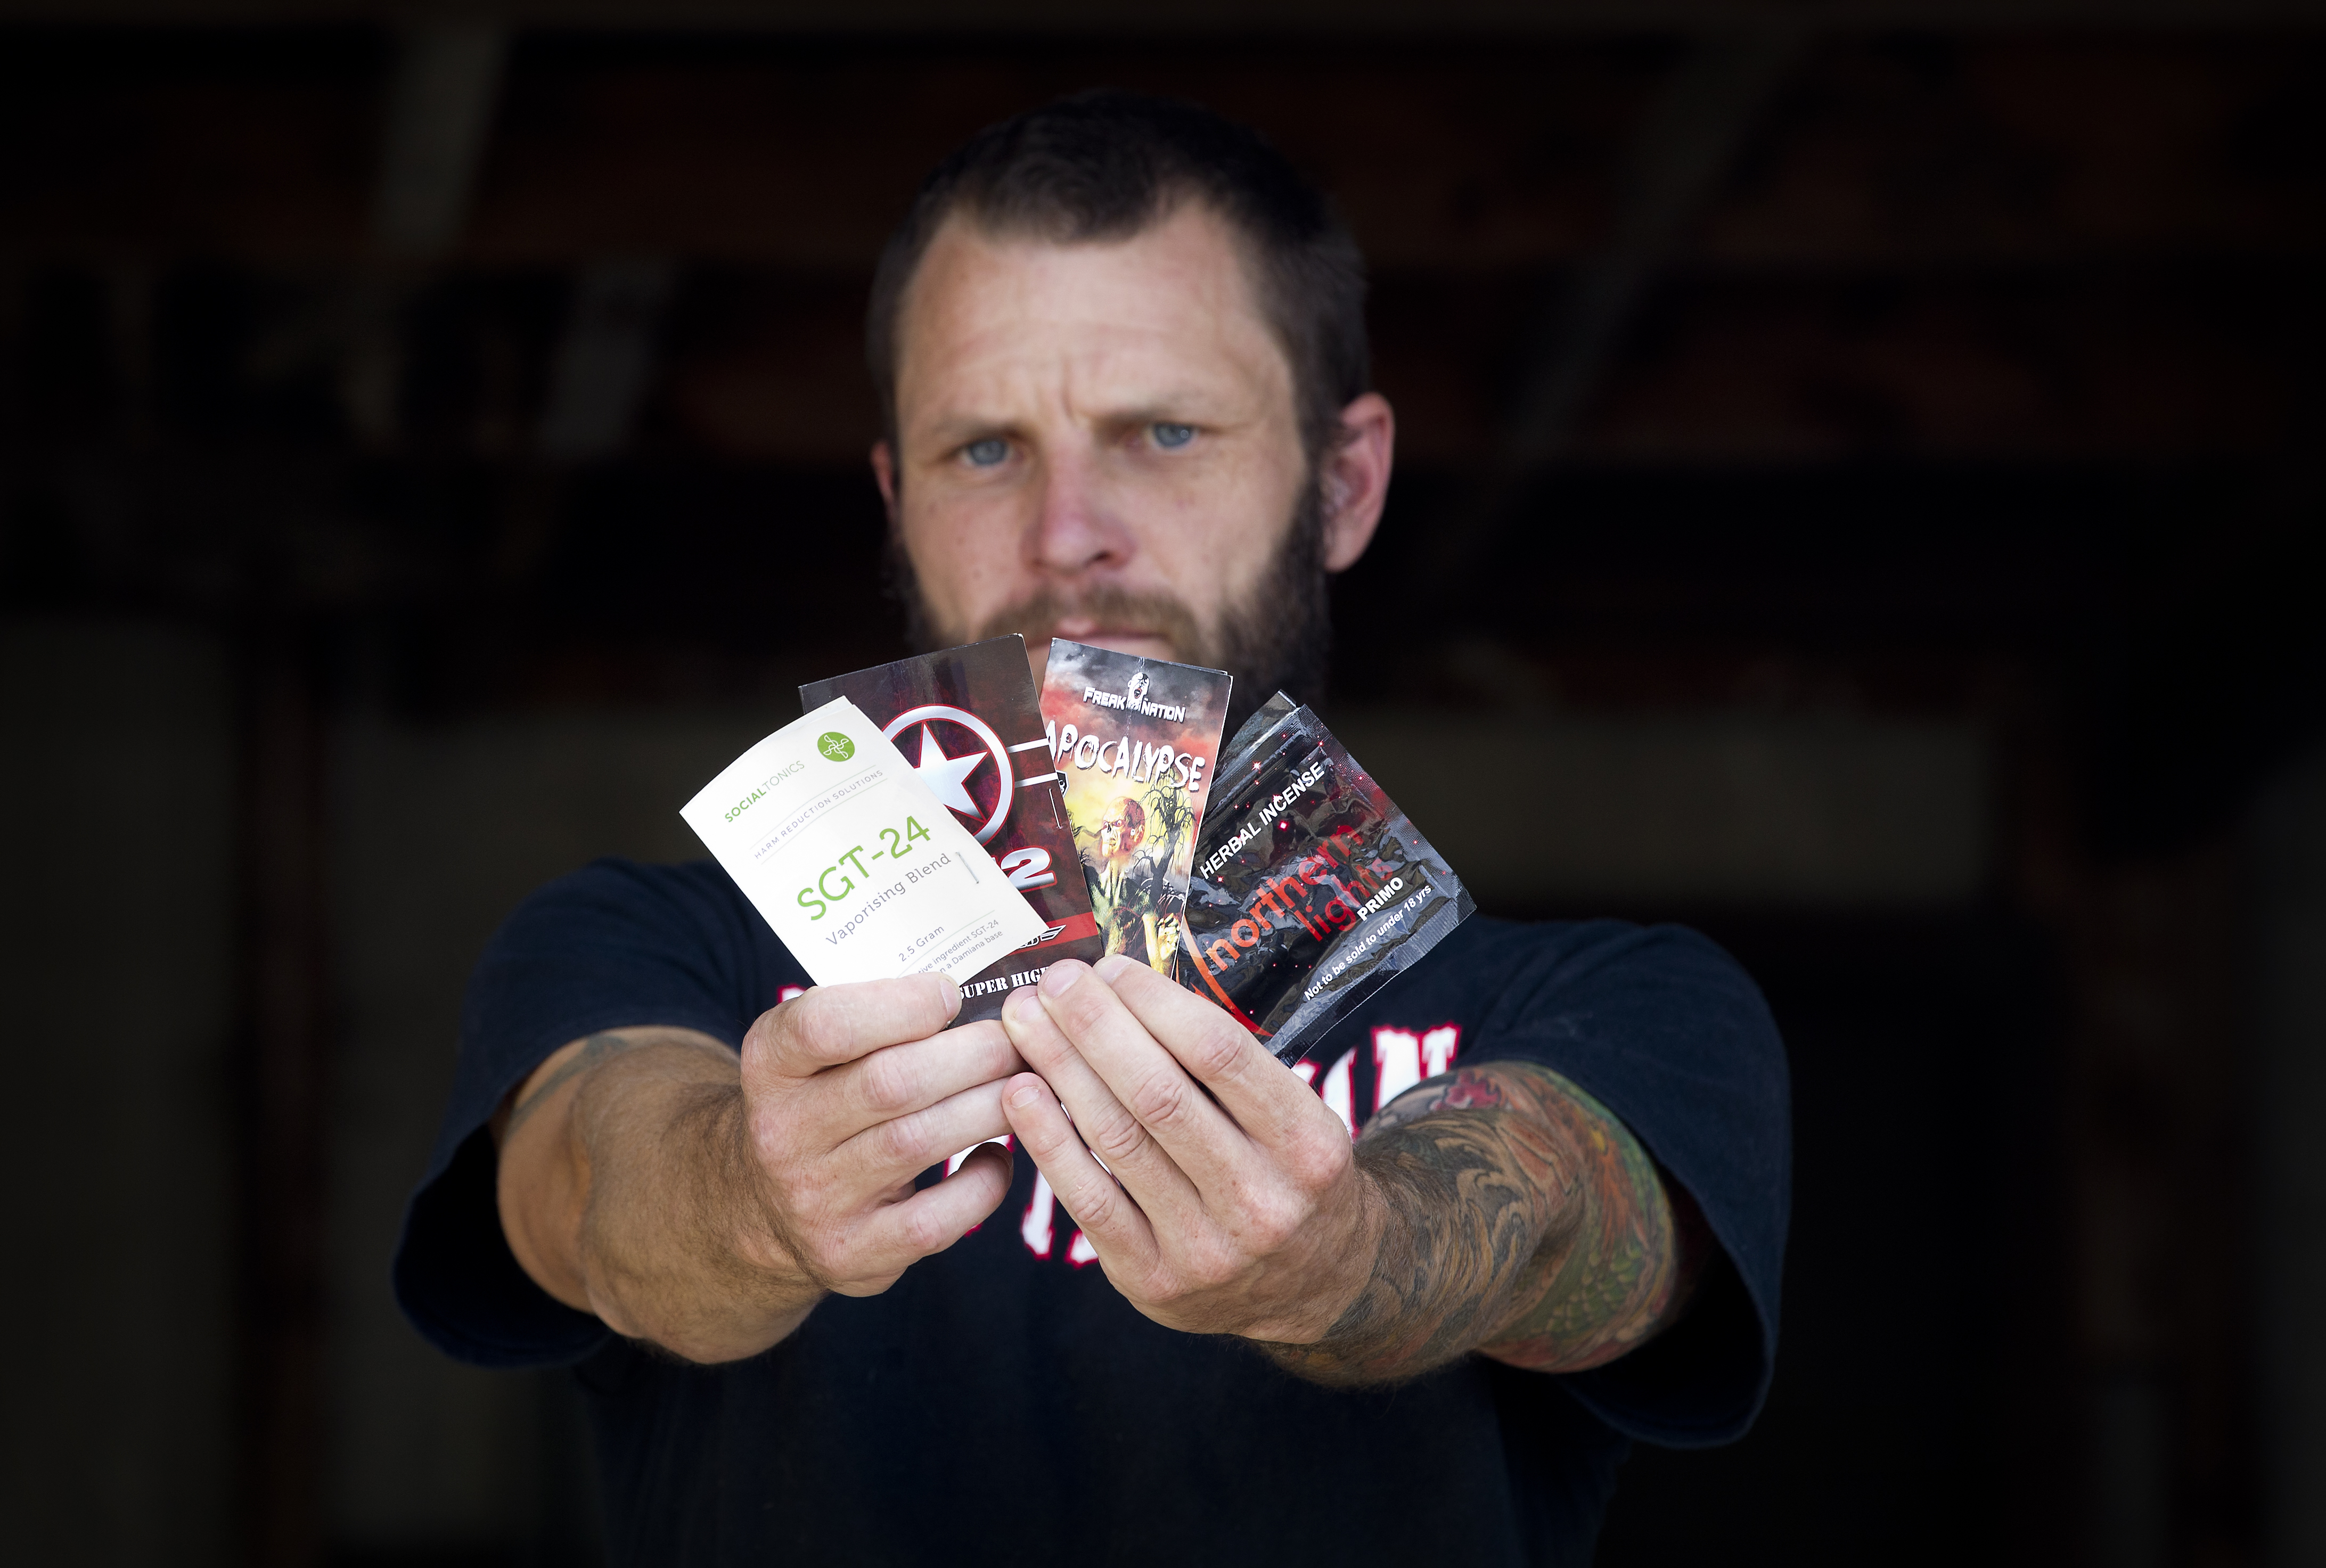 Legal highs linked to psychosis - NZ Herald